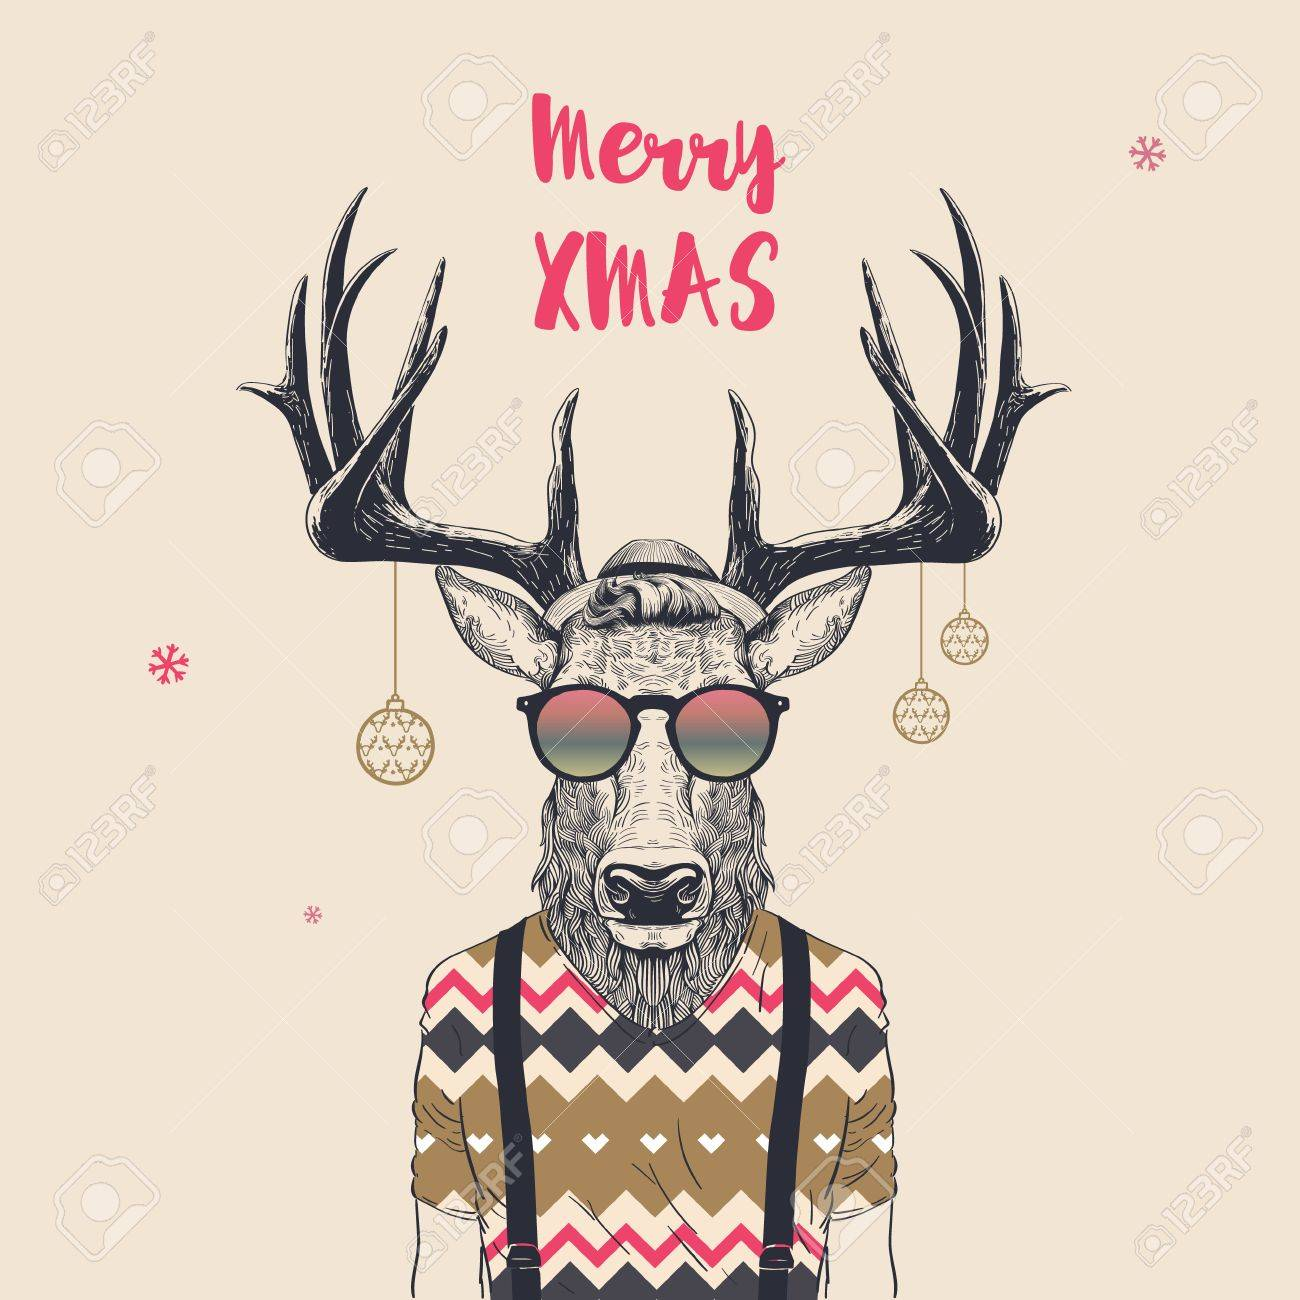 Christmas Card With Cool Hipster Deer, Merry Xmas, Vector ...